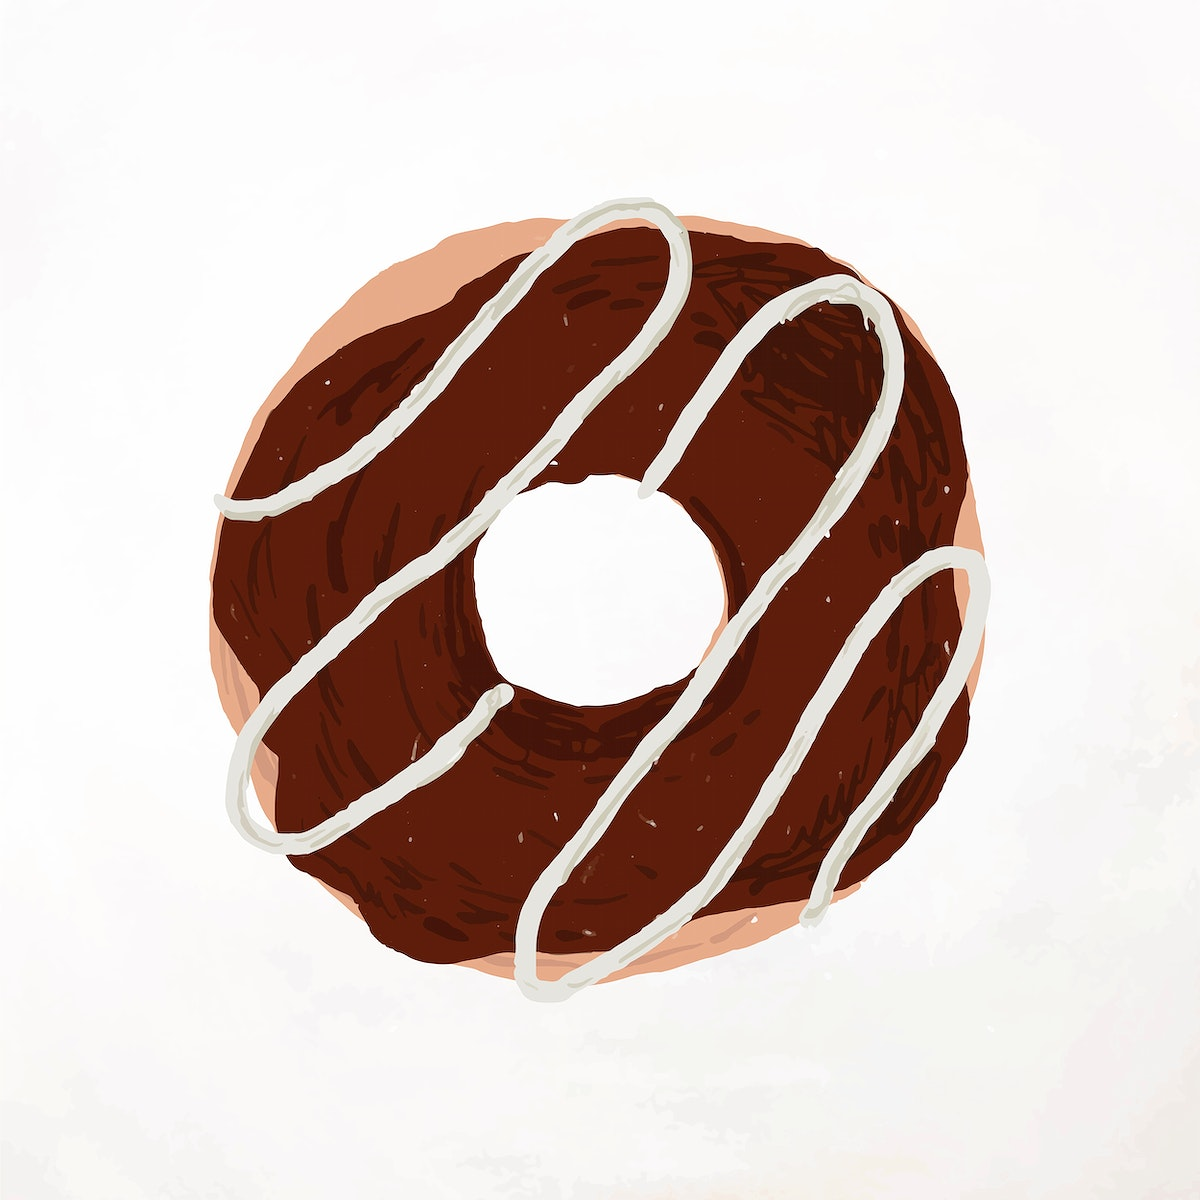 Chocolate frosted donut element cute hand drawn style